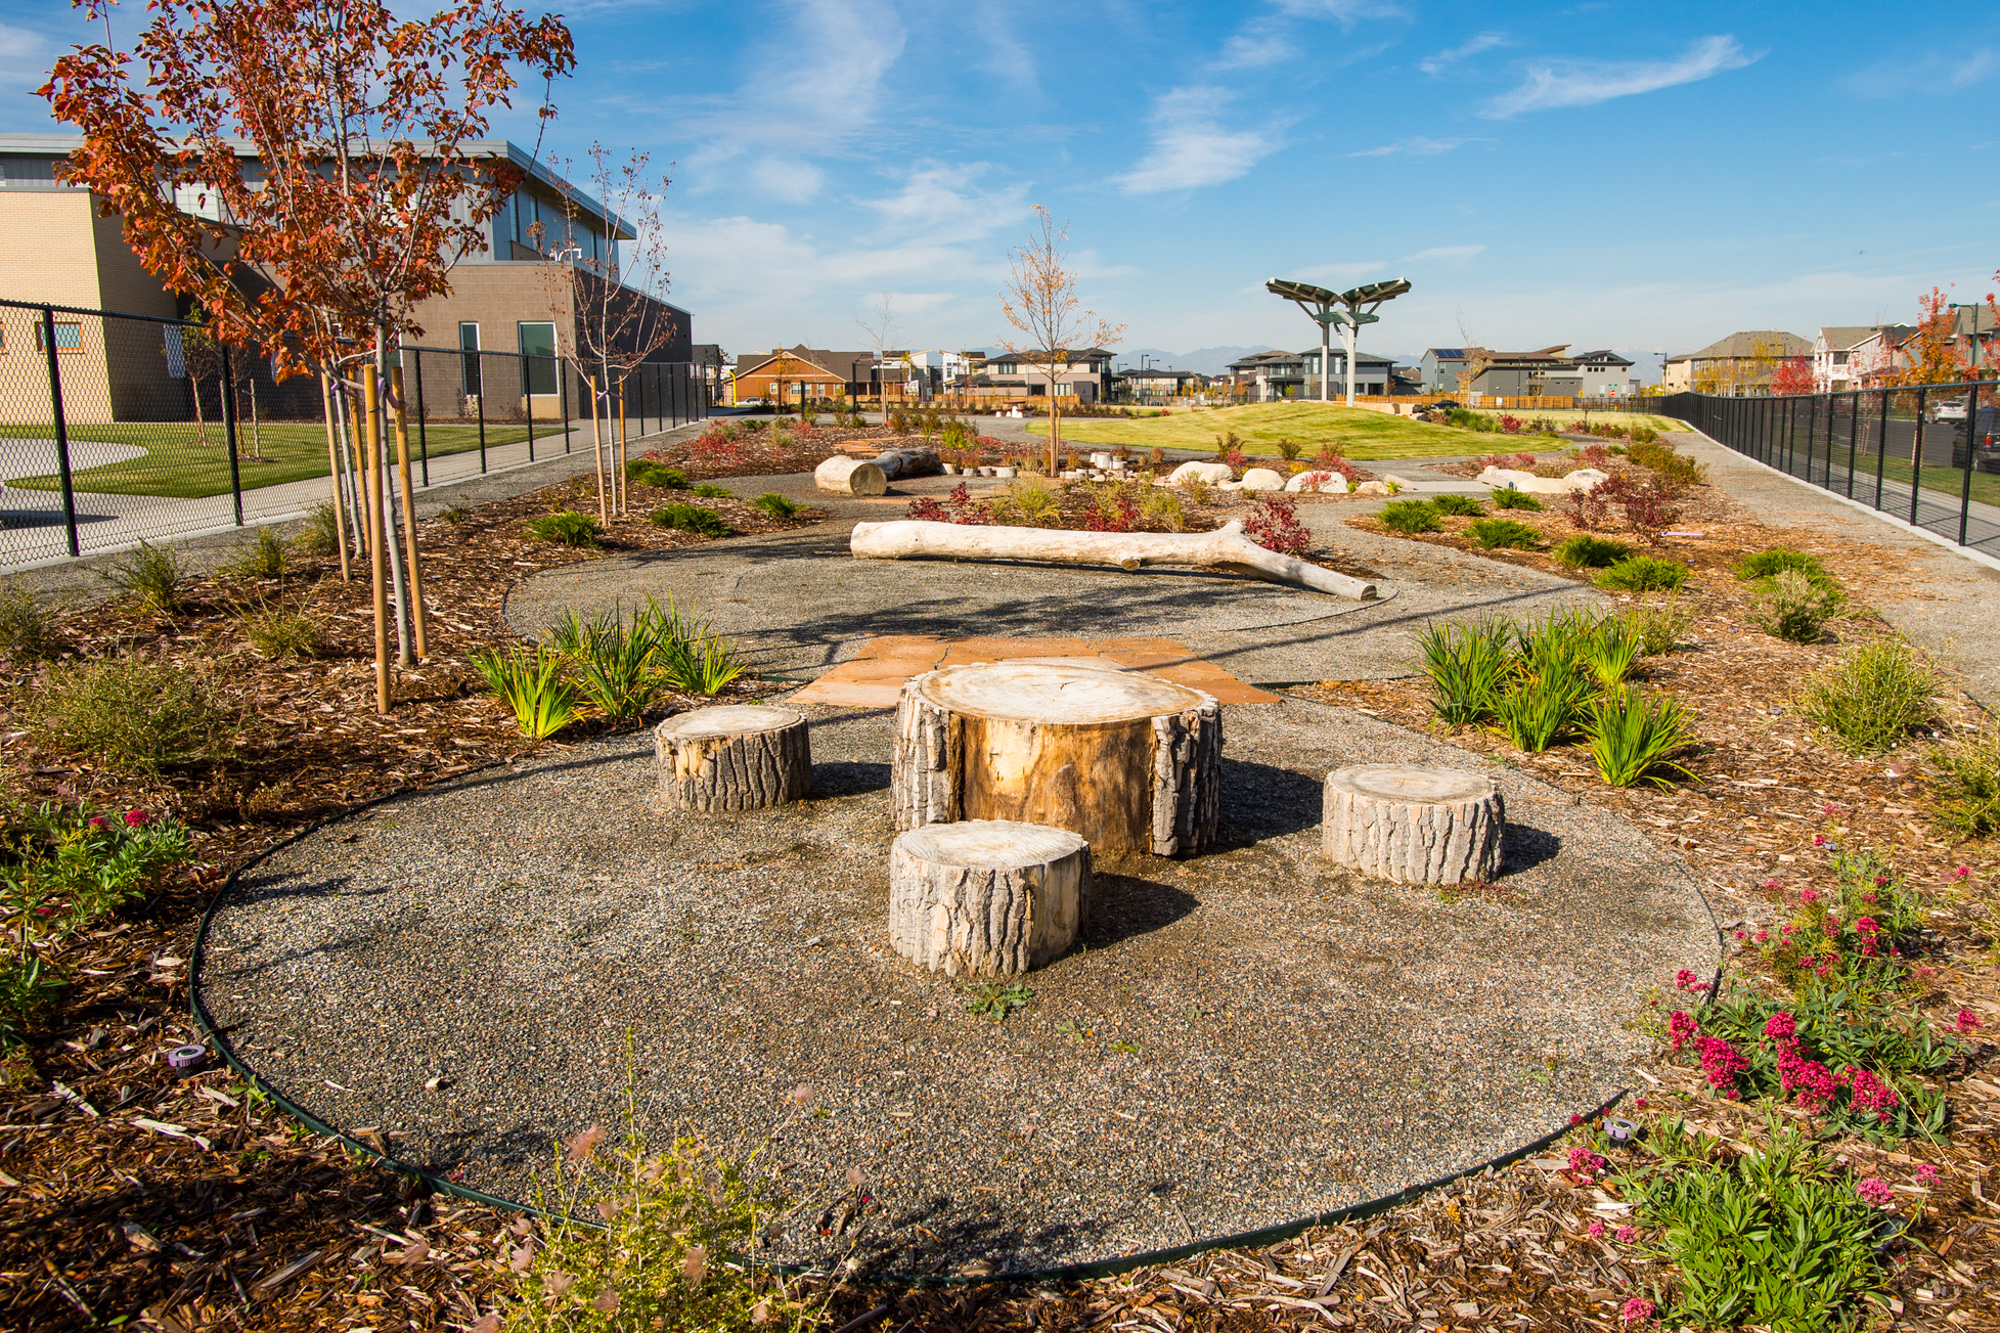 School playground learning landscape nature play